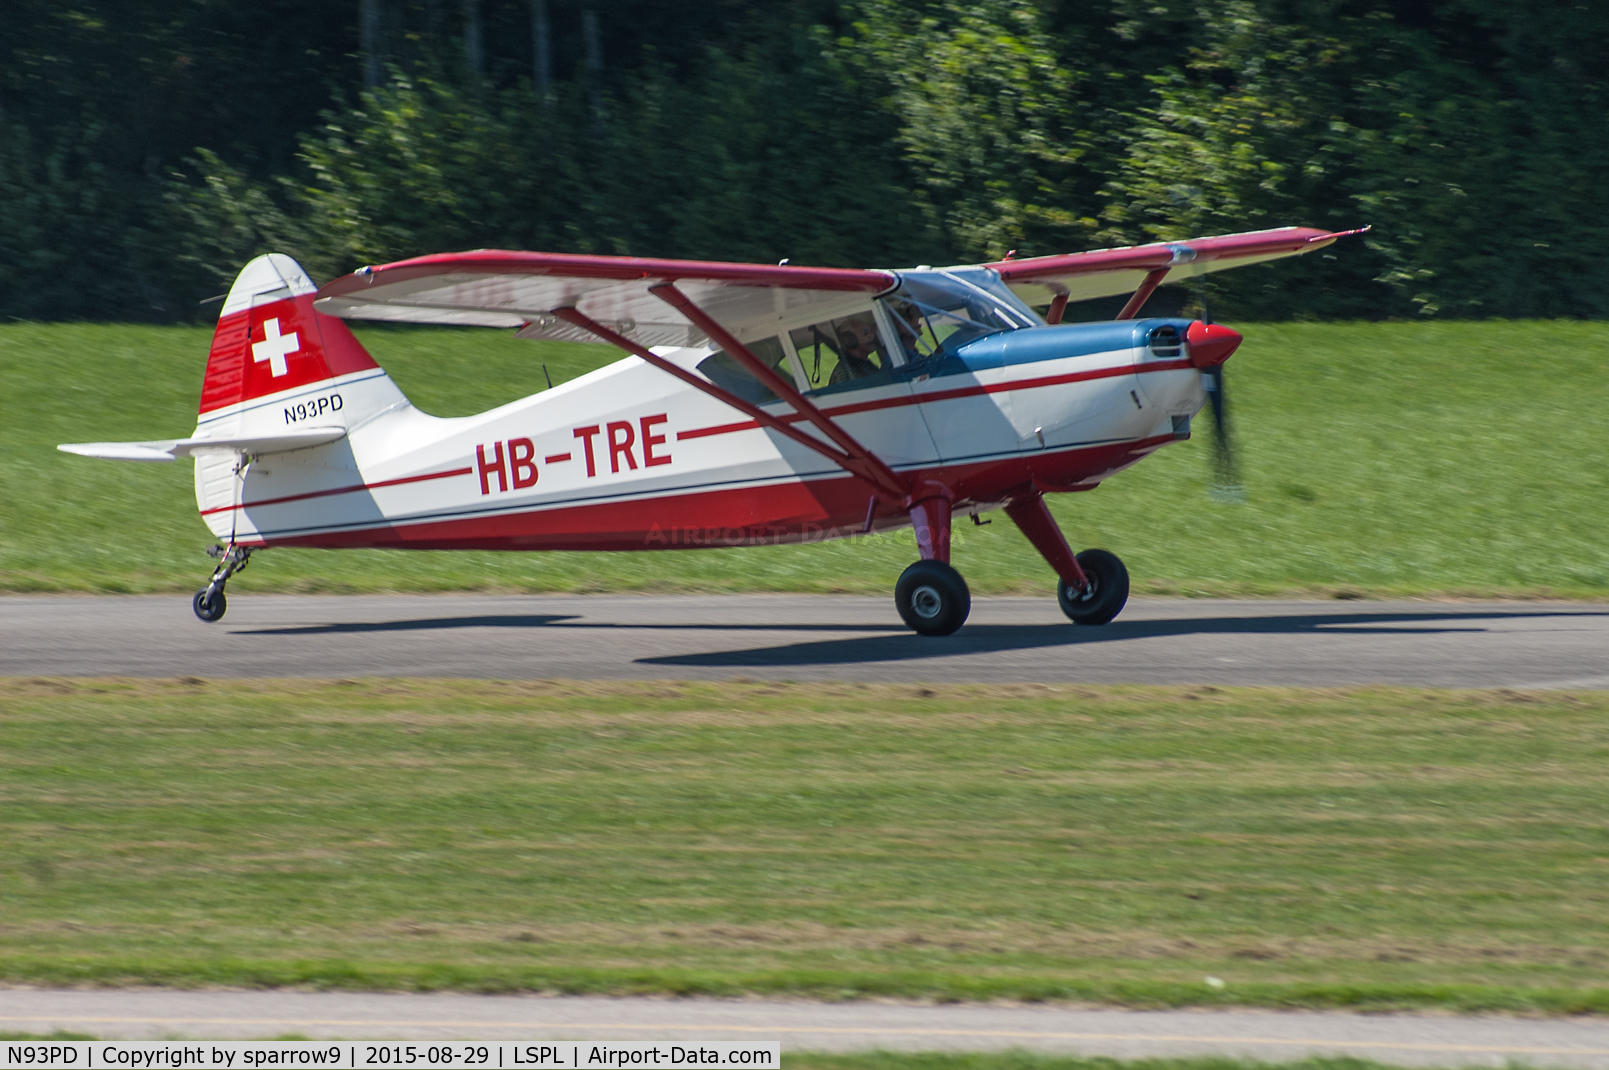 N93PD, 1946 Stinson 108-2 Voyager C/N 108-373, Taking-off at Langenthal-Bleienbach airfield, where it is based now.